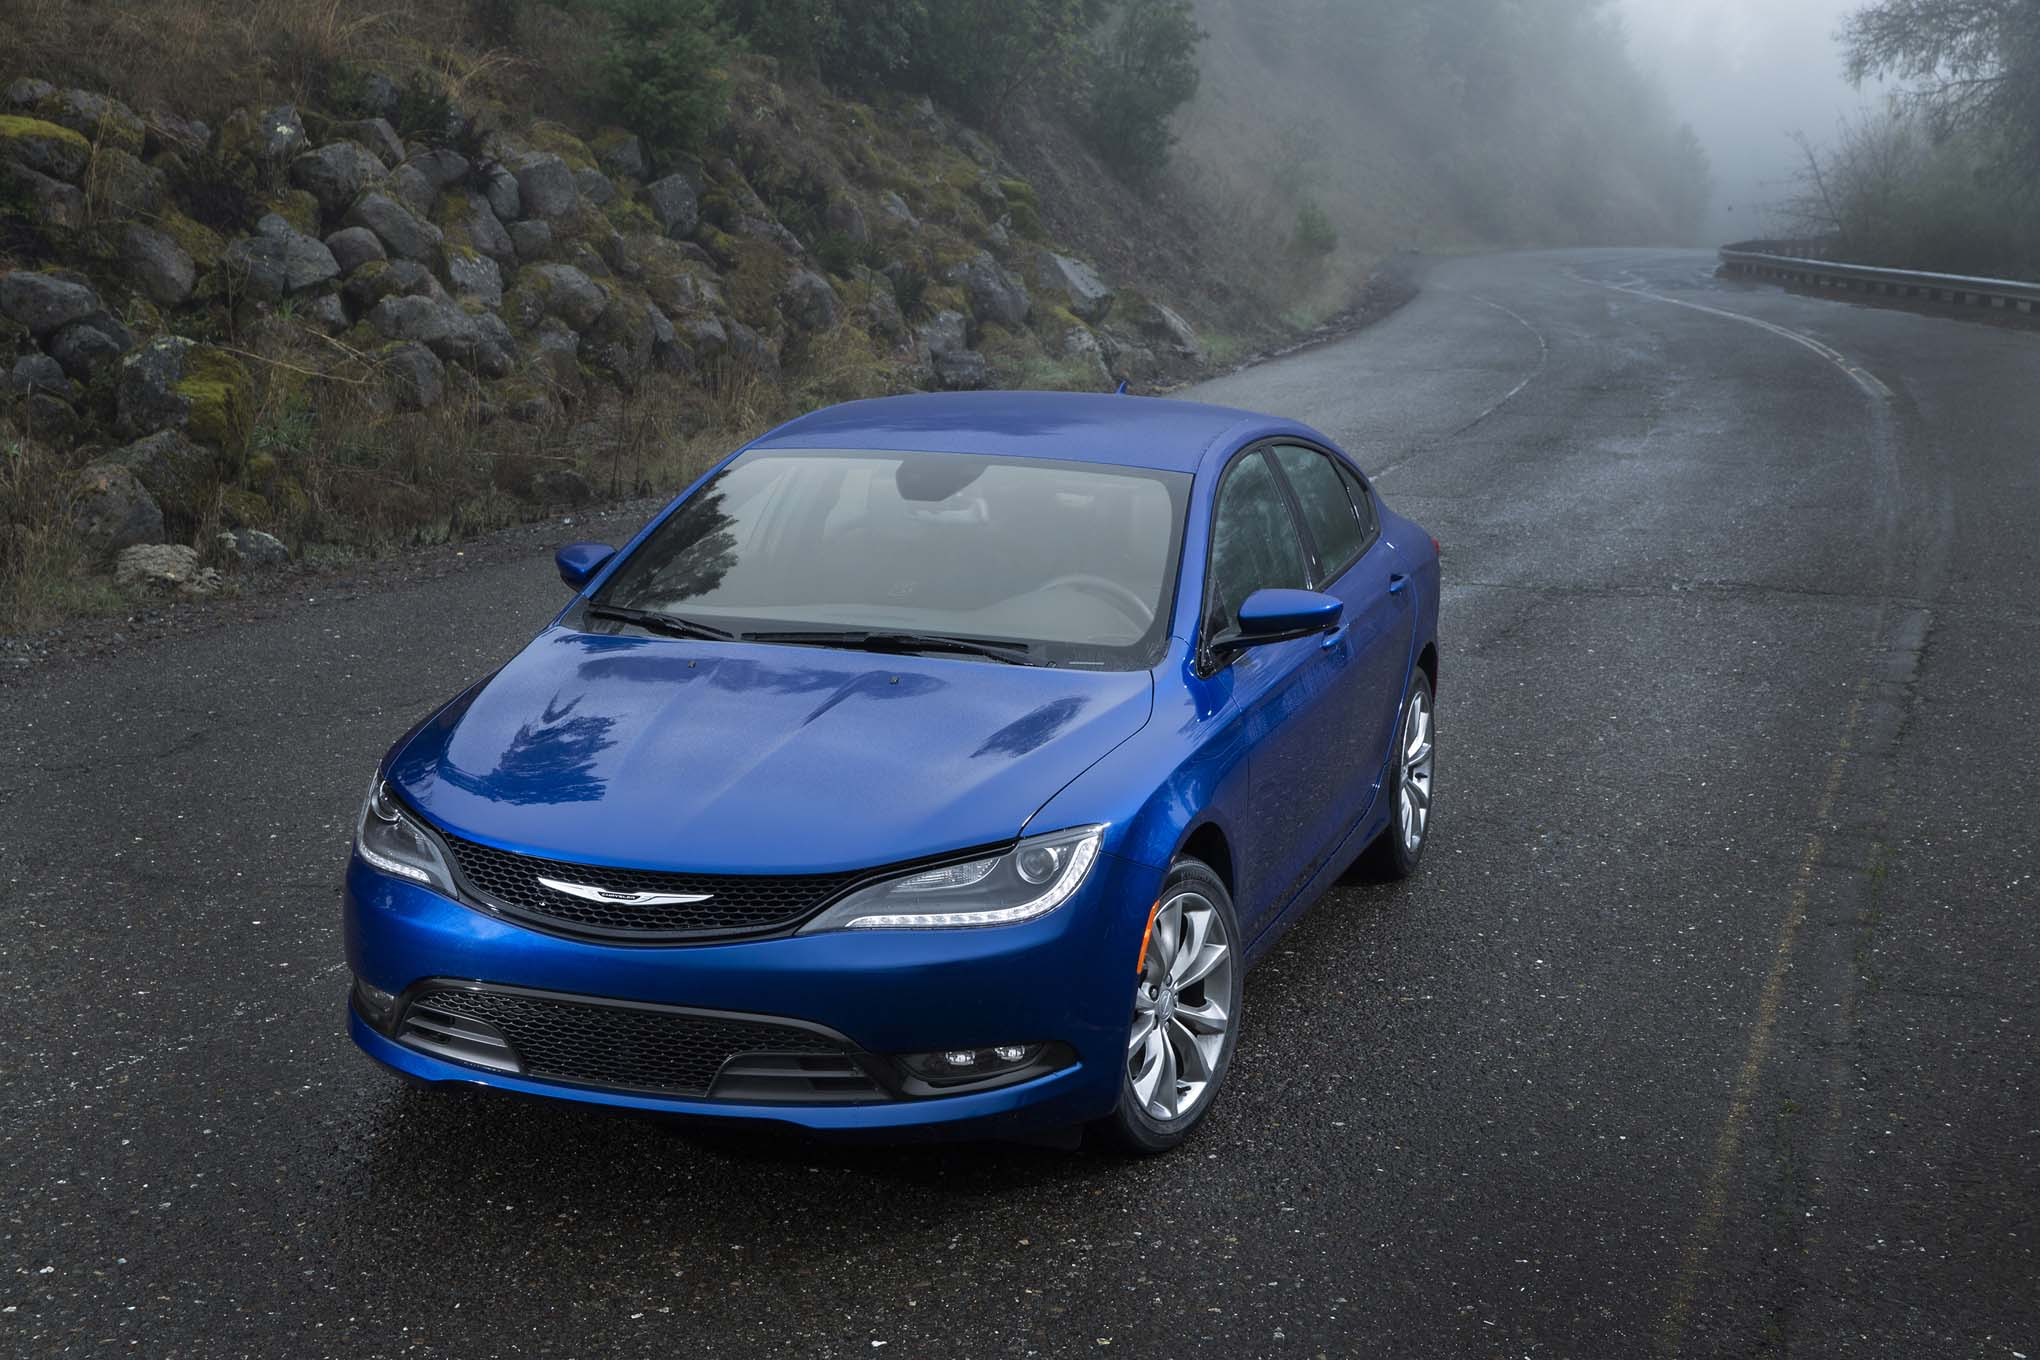 Chrysler 200: Fuel Requirements